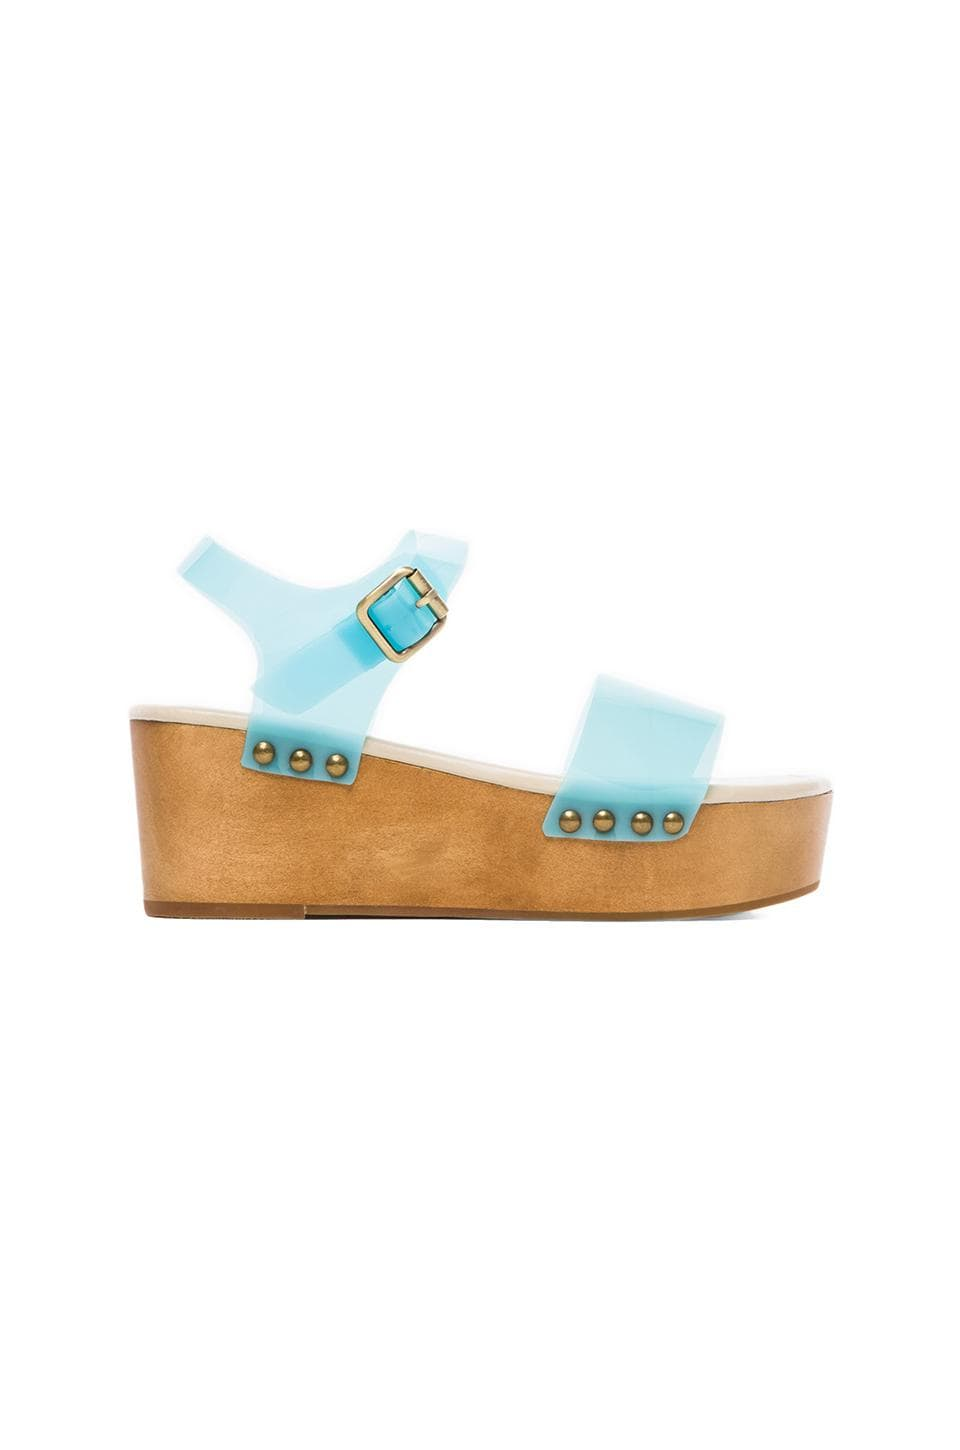 MADISON HARDING Dorothy Sandal in Blue